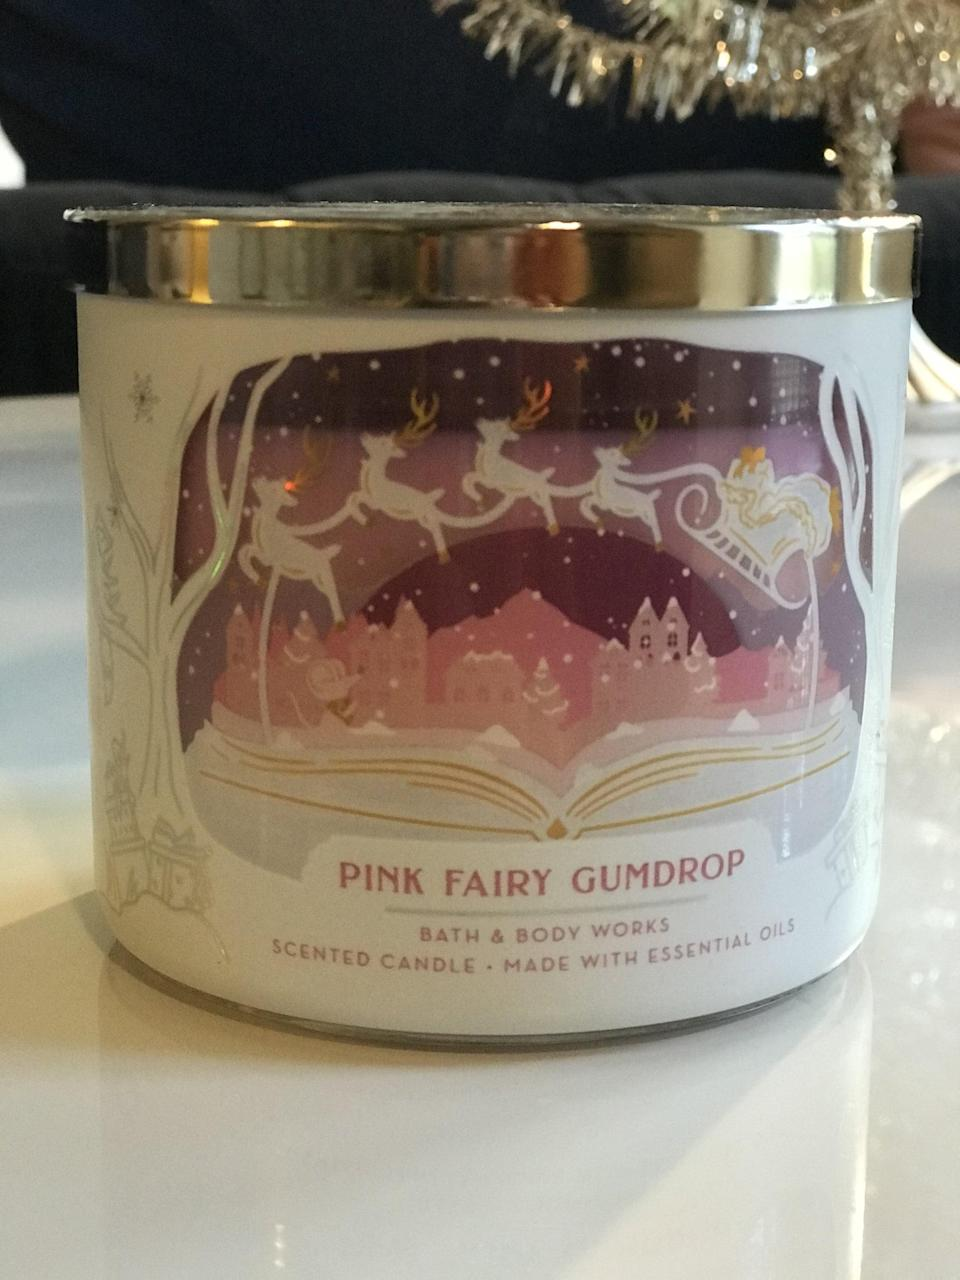 <p><span>Pink Fairy Gumdrop 3-Wick Candle</span> ($15, originally $25)</p> <p><strong>What It Smells Like:</strong> Those crystal gumdrops you stick on a gingerbread house.</p>